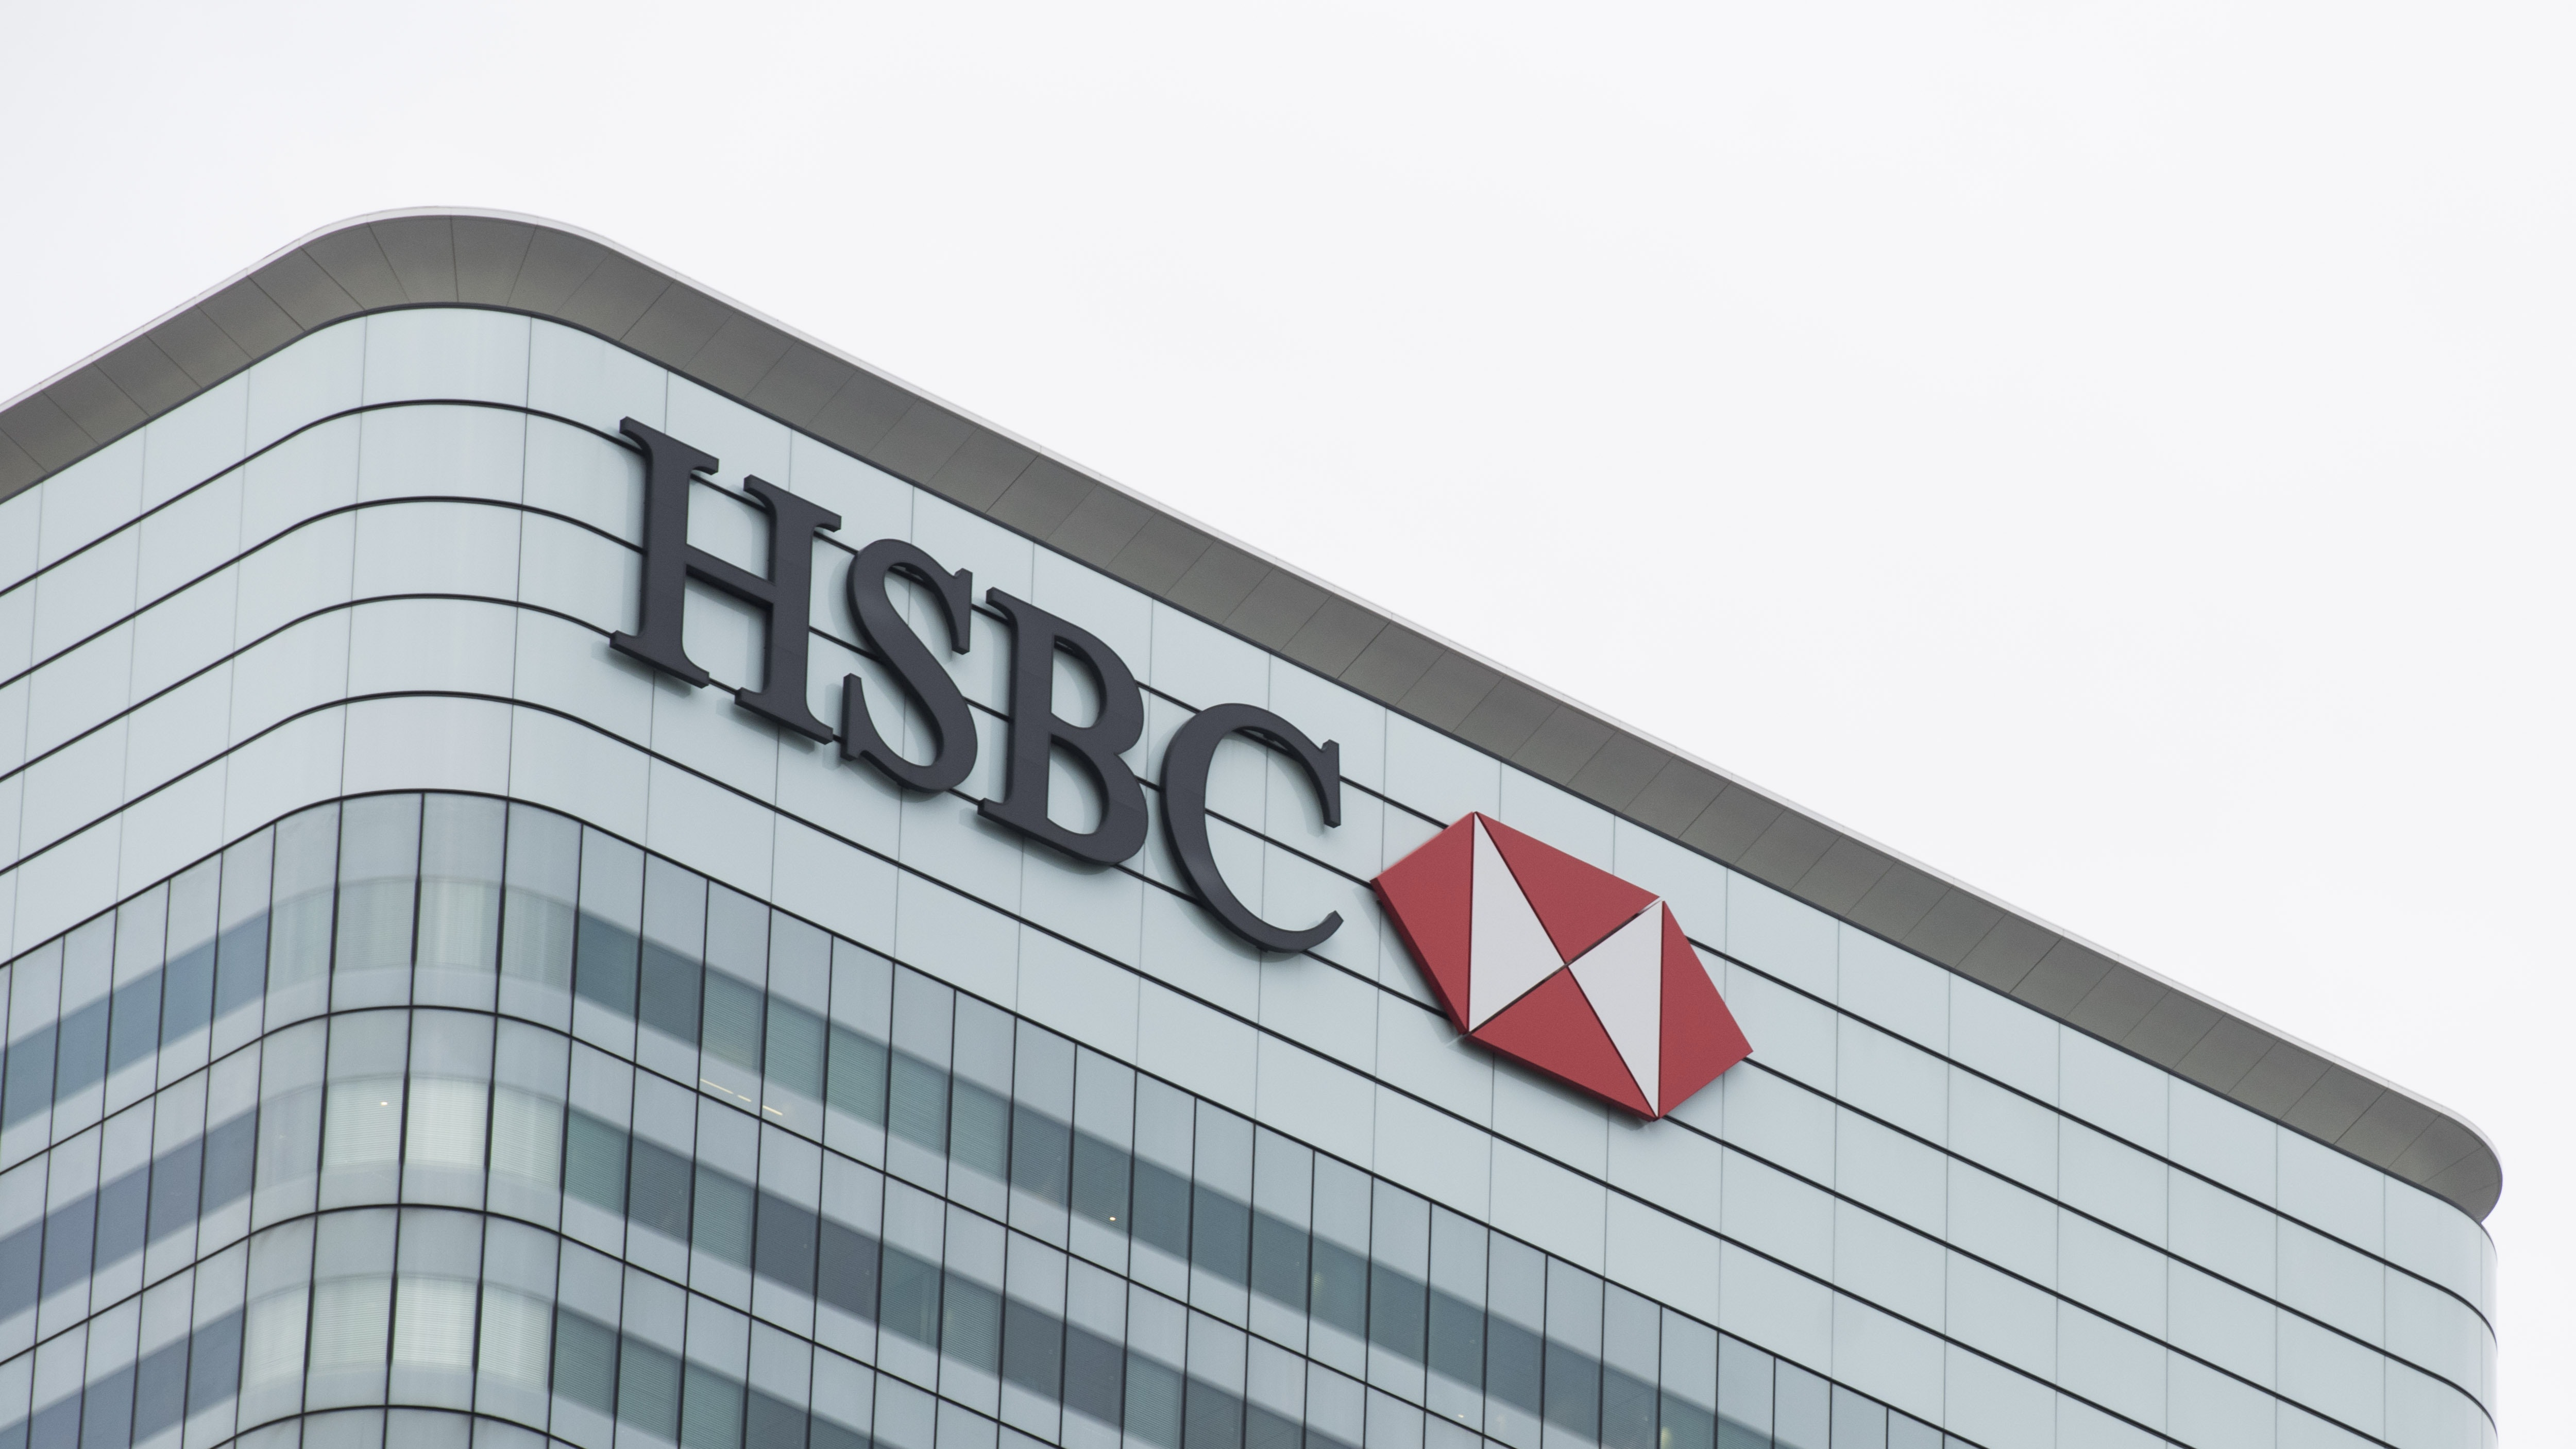 HSBC Bank reports a mean gender pay gap of 59% for 2017